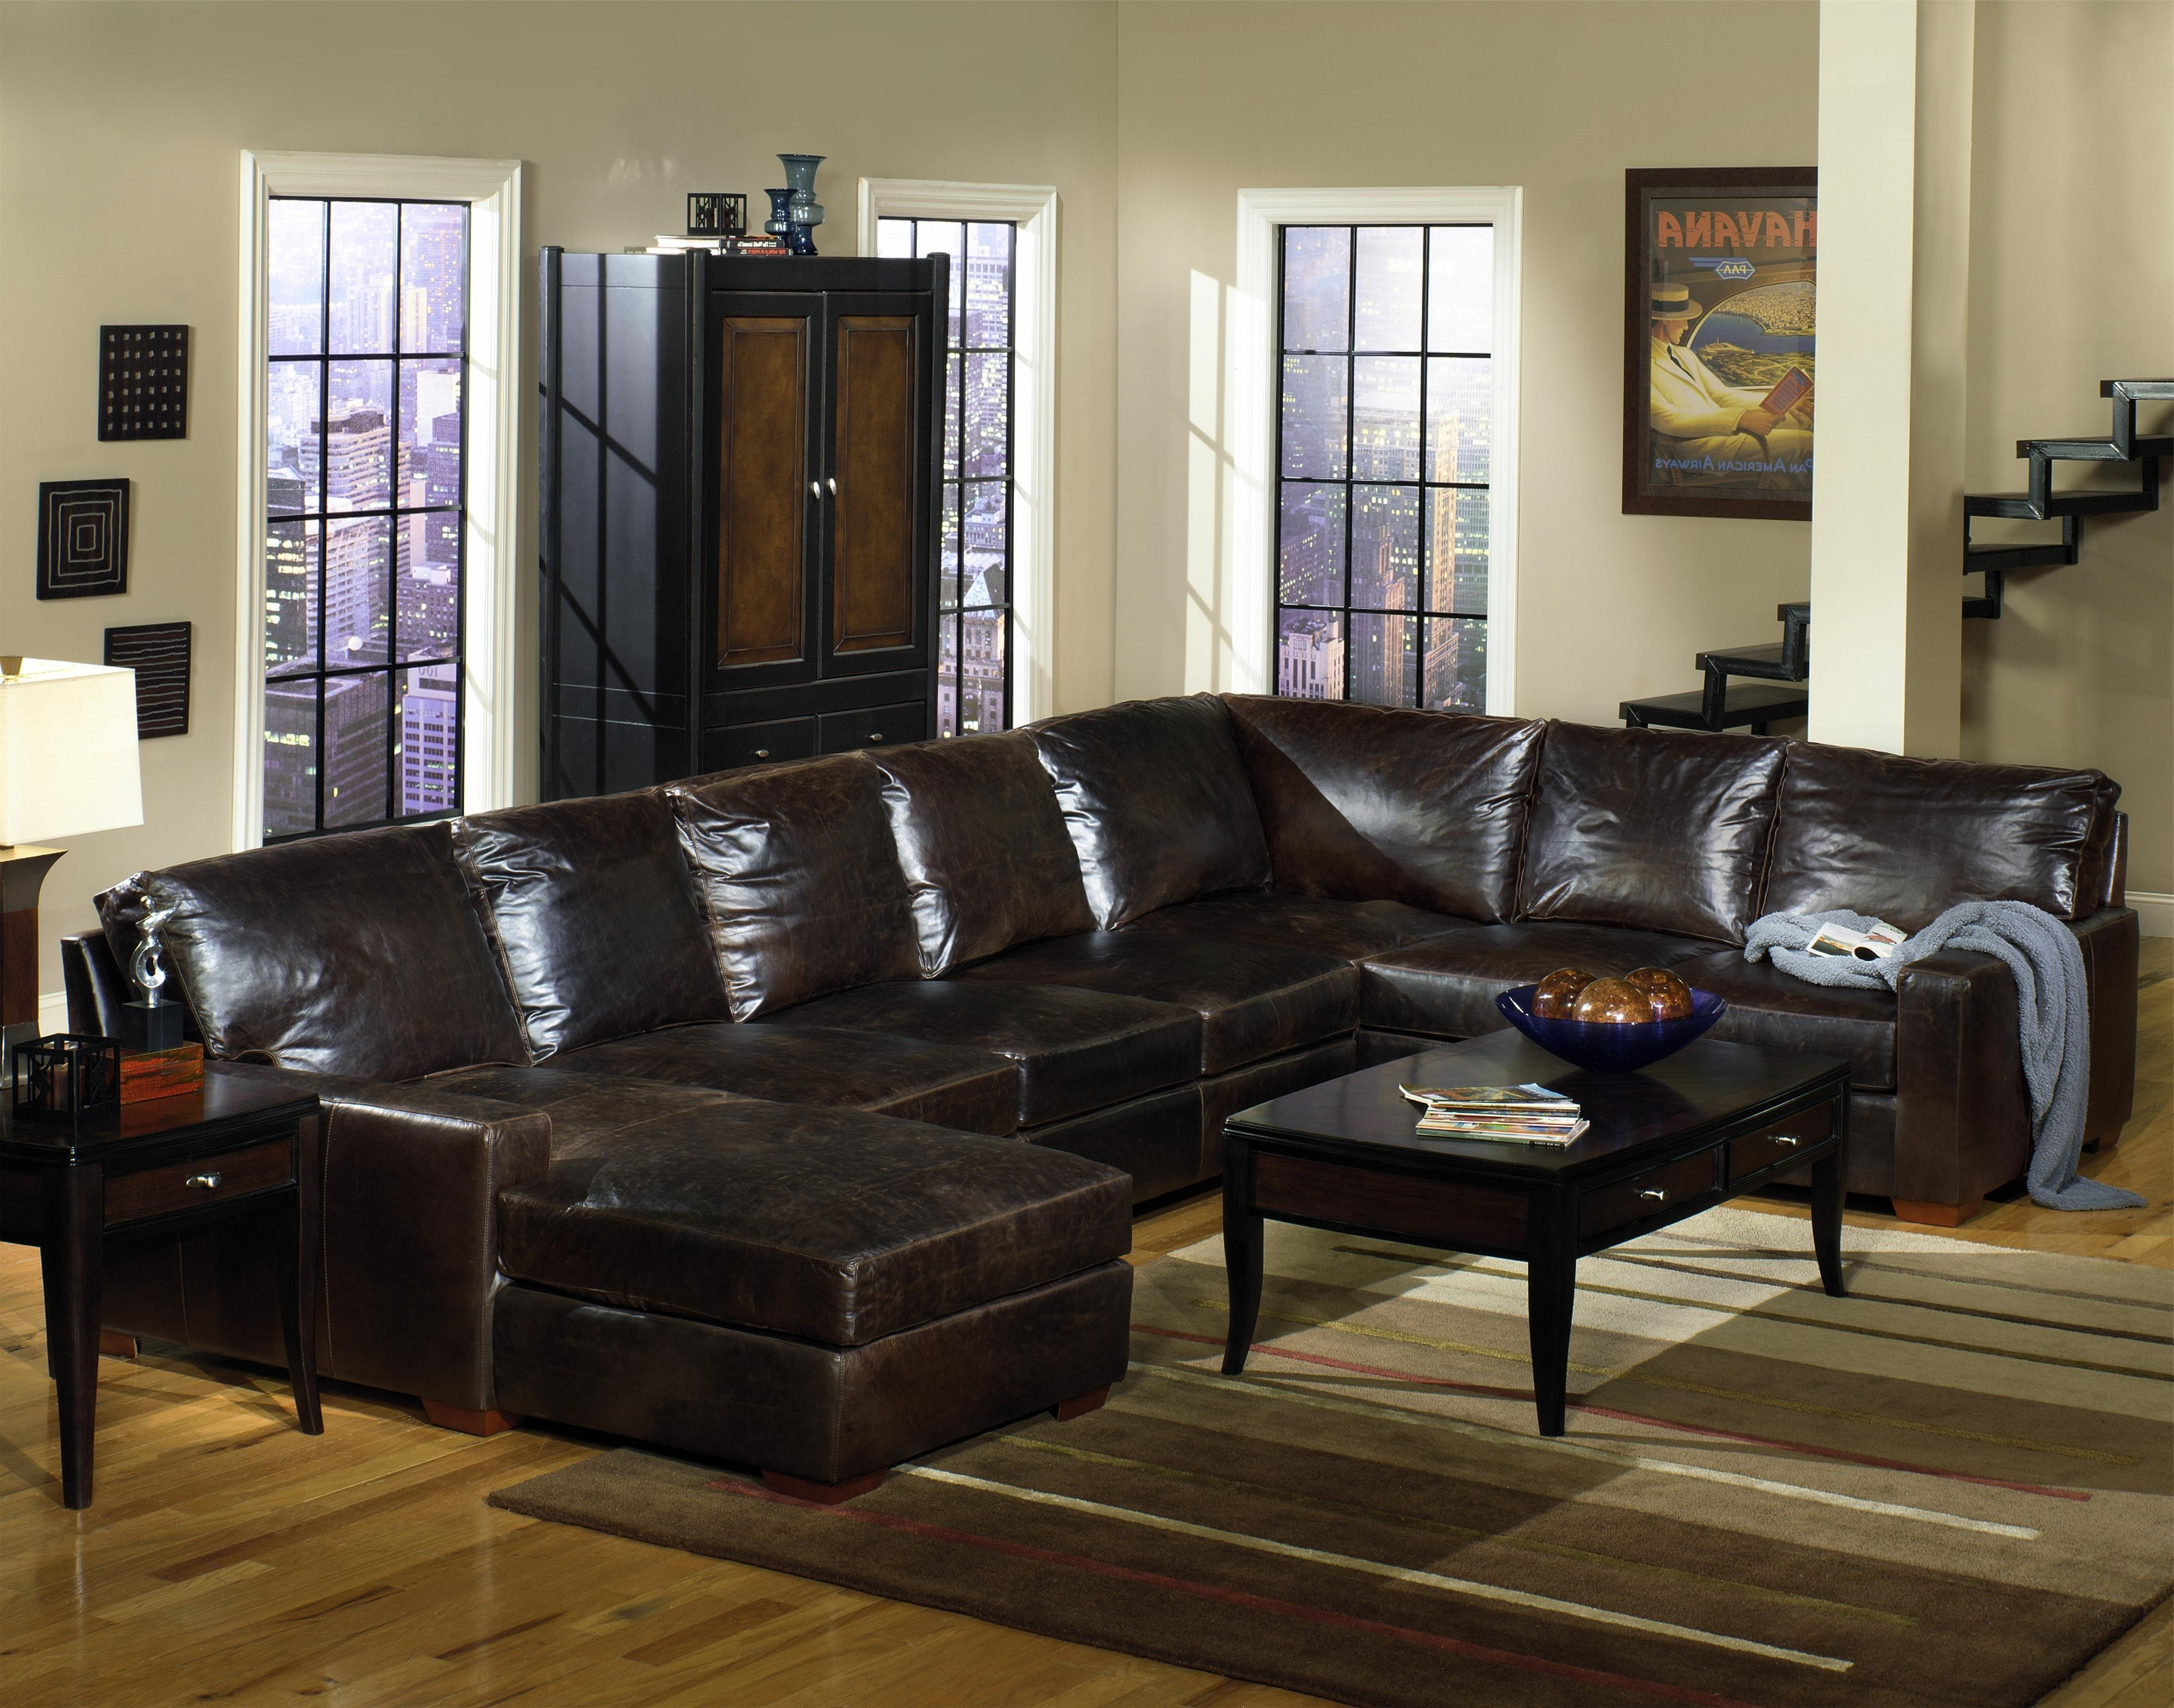 Widely Used Leather Chaise Sectionals In Usa Premium Leather 9935 Track Arm Sofa Chaise Sectional (View 4 of 15)